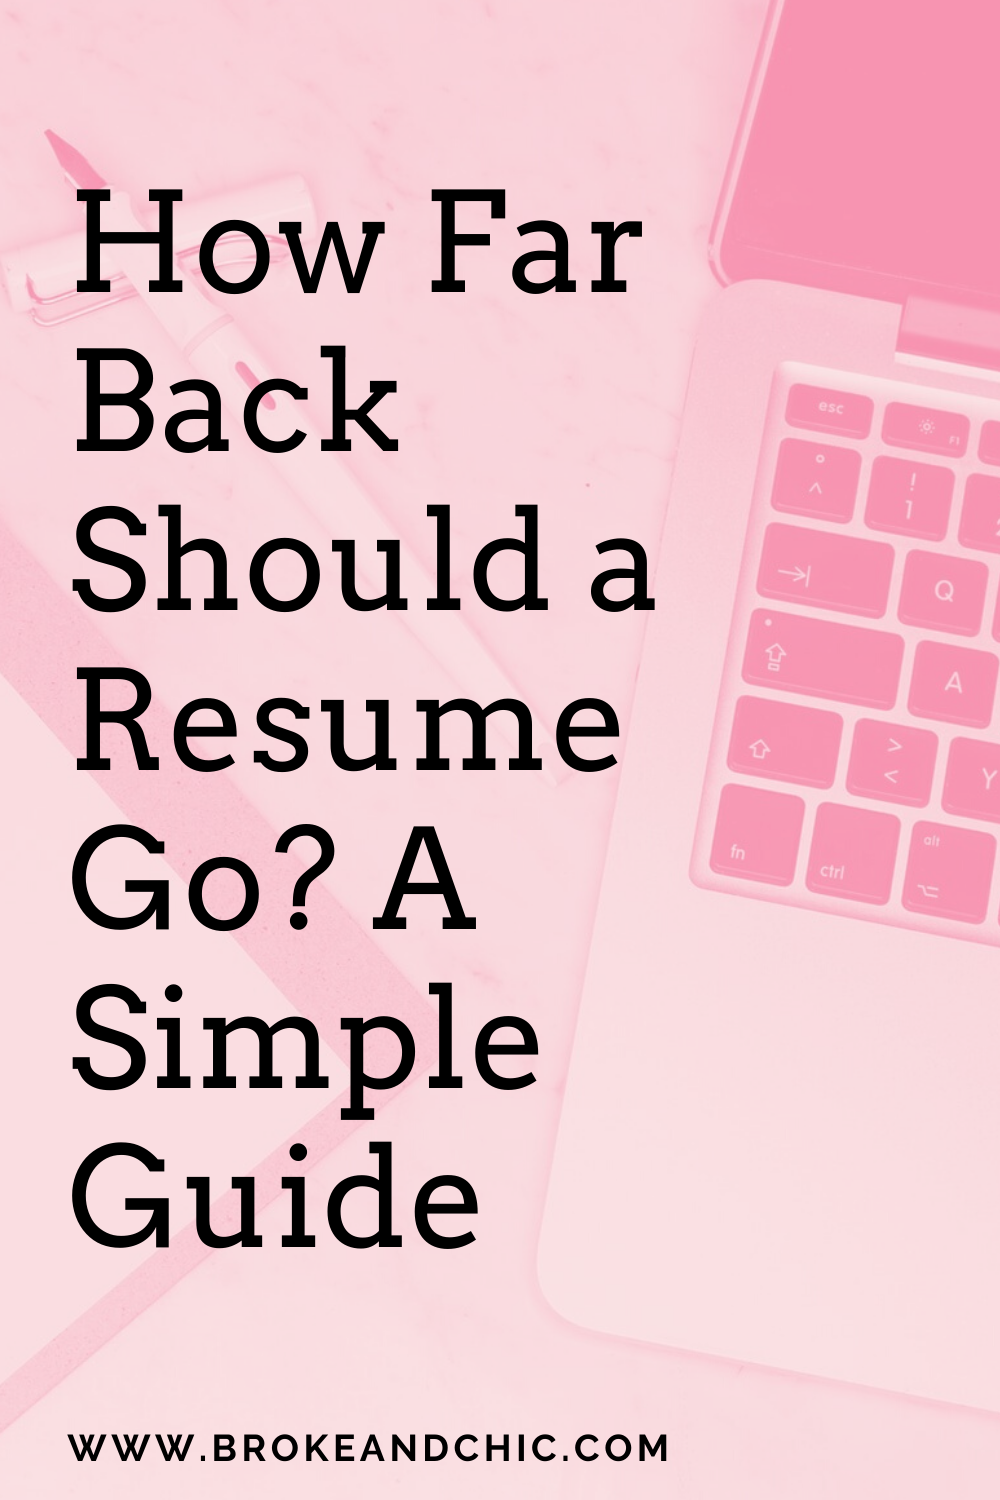 How Far Back Should a Resume Go? A Simple Guide